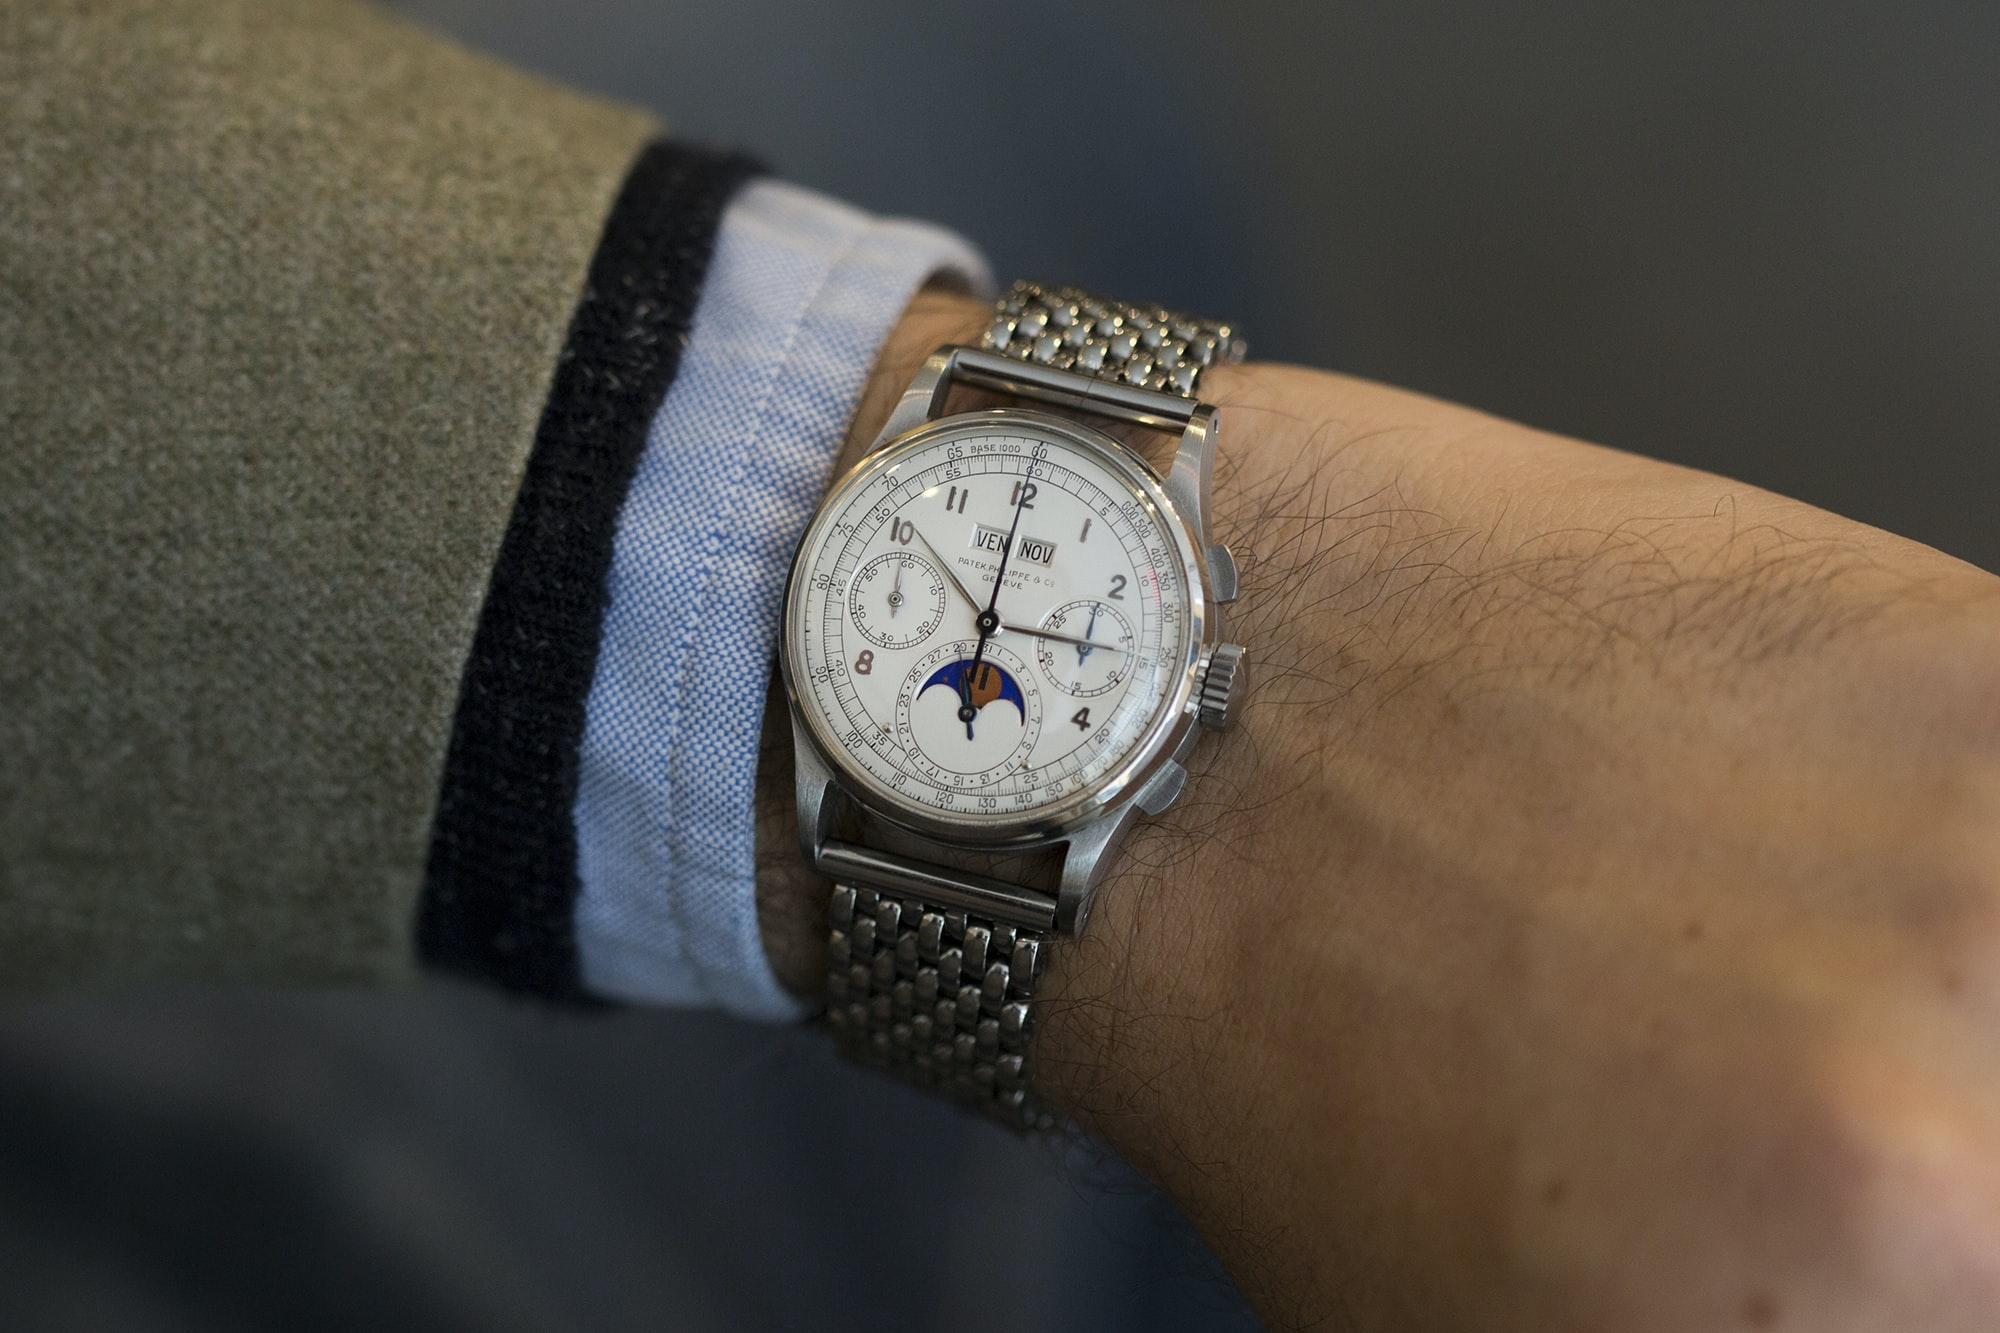 Breaking News: Stainless Steel Patek Philippe Ref. 1518 Sells For Over $11,000,000 At Phillips Geneva (And Sets A New World Record For ANY Wristwatch) Breaking News: Stainless Steel Patek Philippe Ref. 1518 Sells For Over $11,000,000 At Phillips Geneva (And Sets A New World Record For ANY Wristwatch) 23